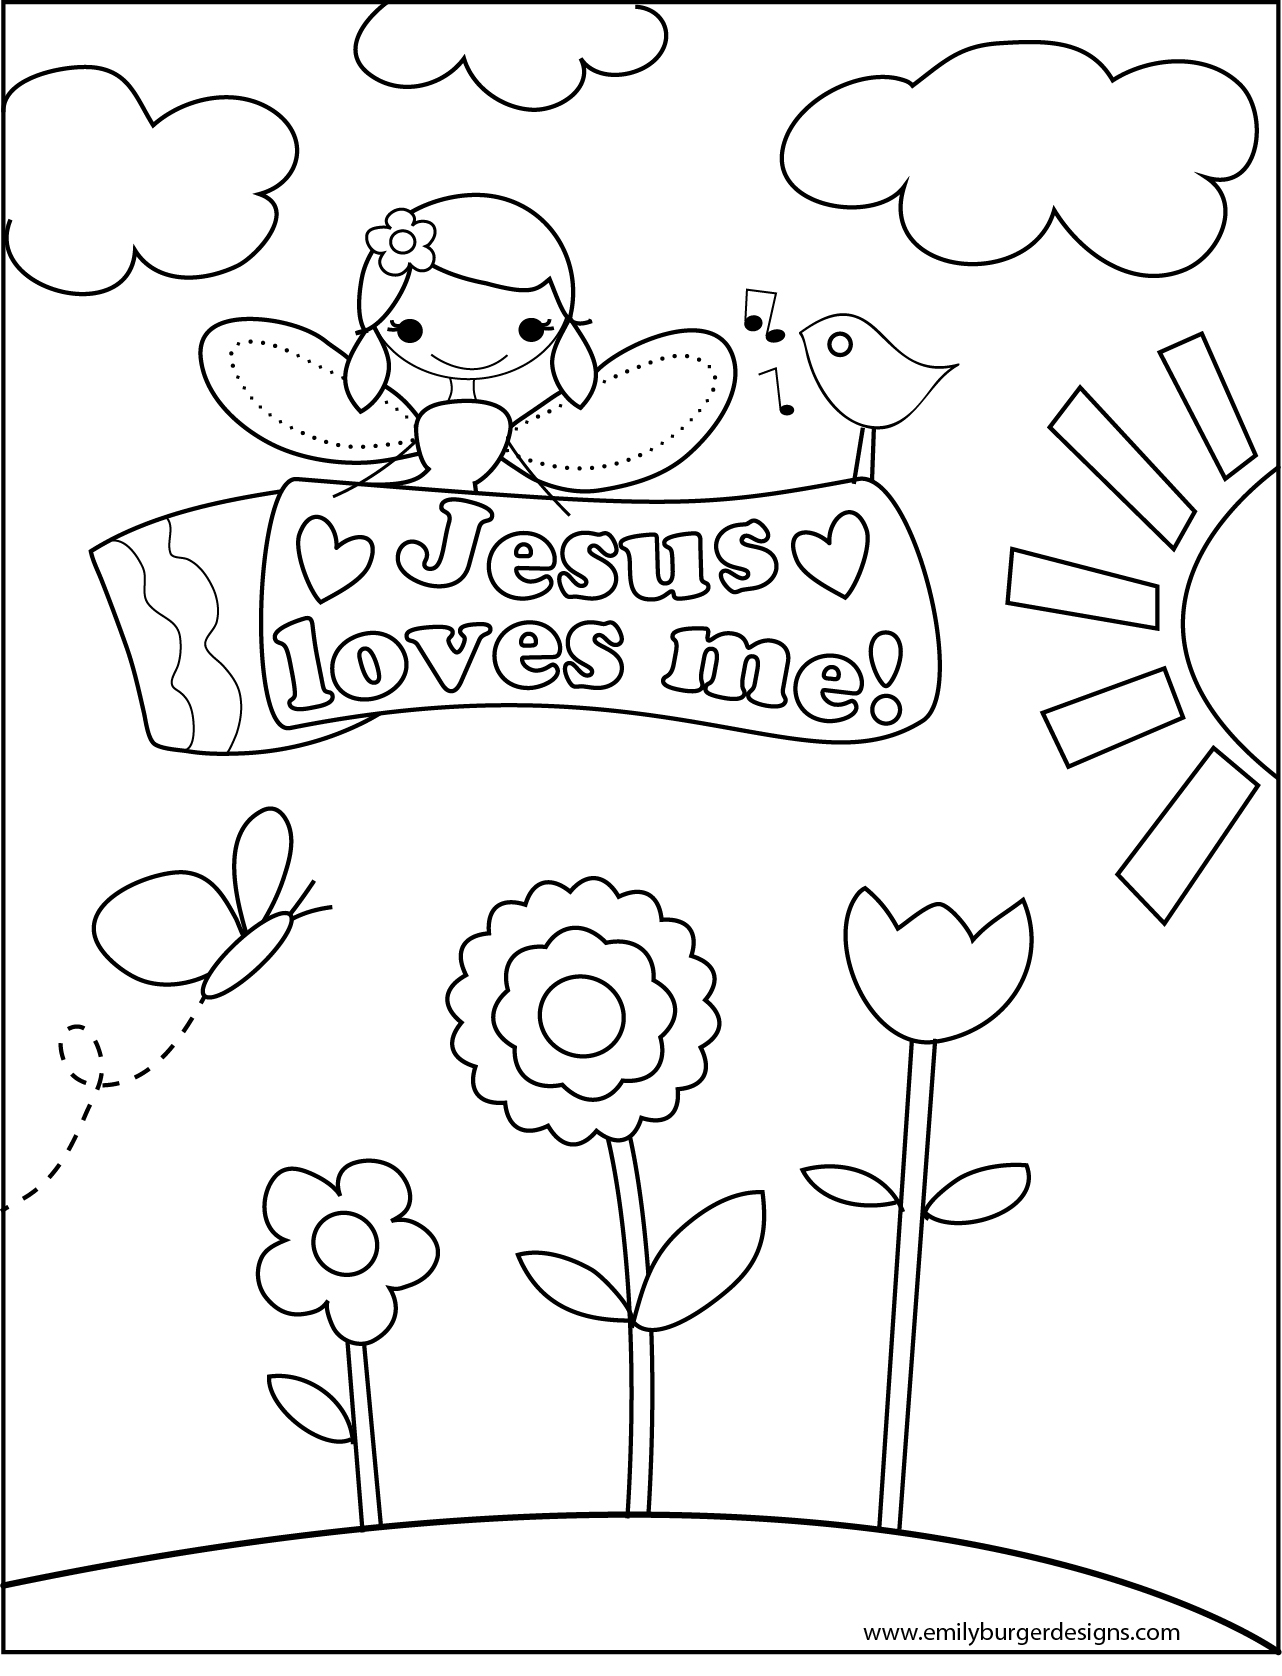 coloring jesus loves me coloring pages love jesus jesus loves me jesus love jesus me loves coloring